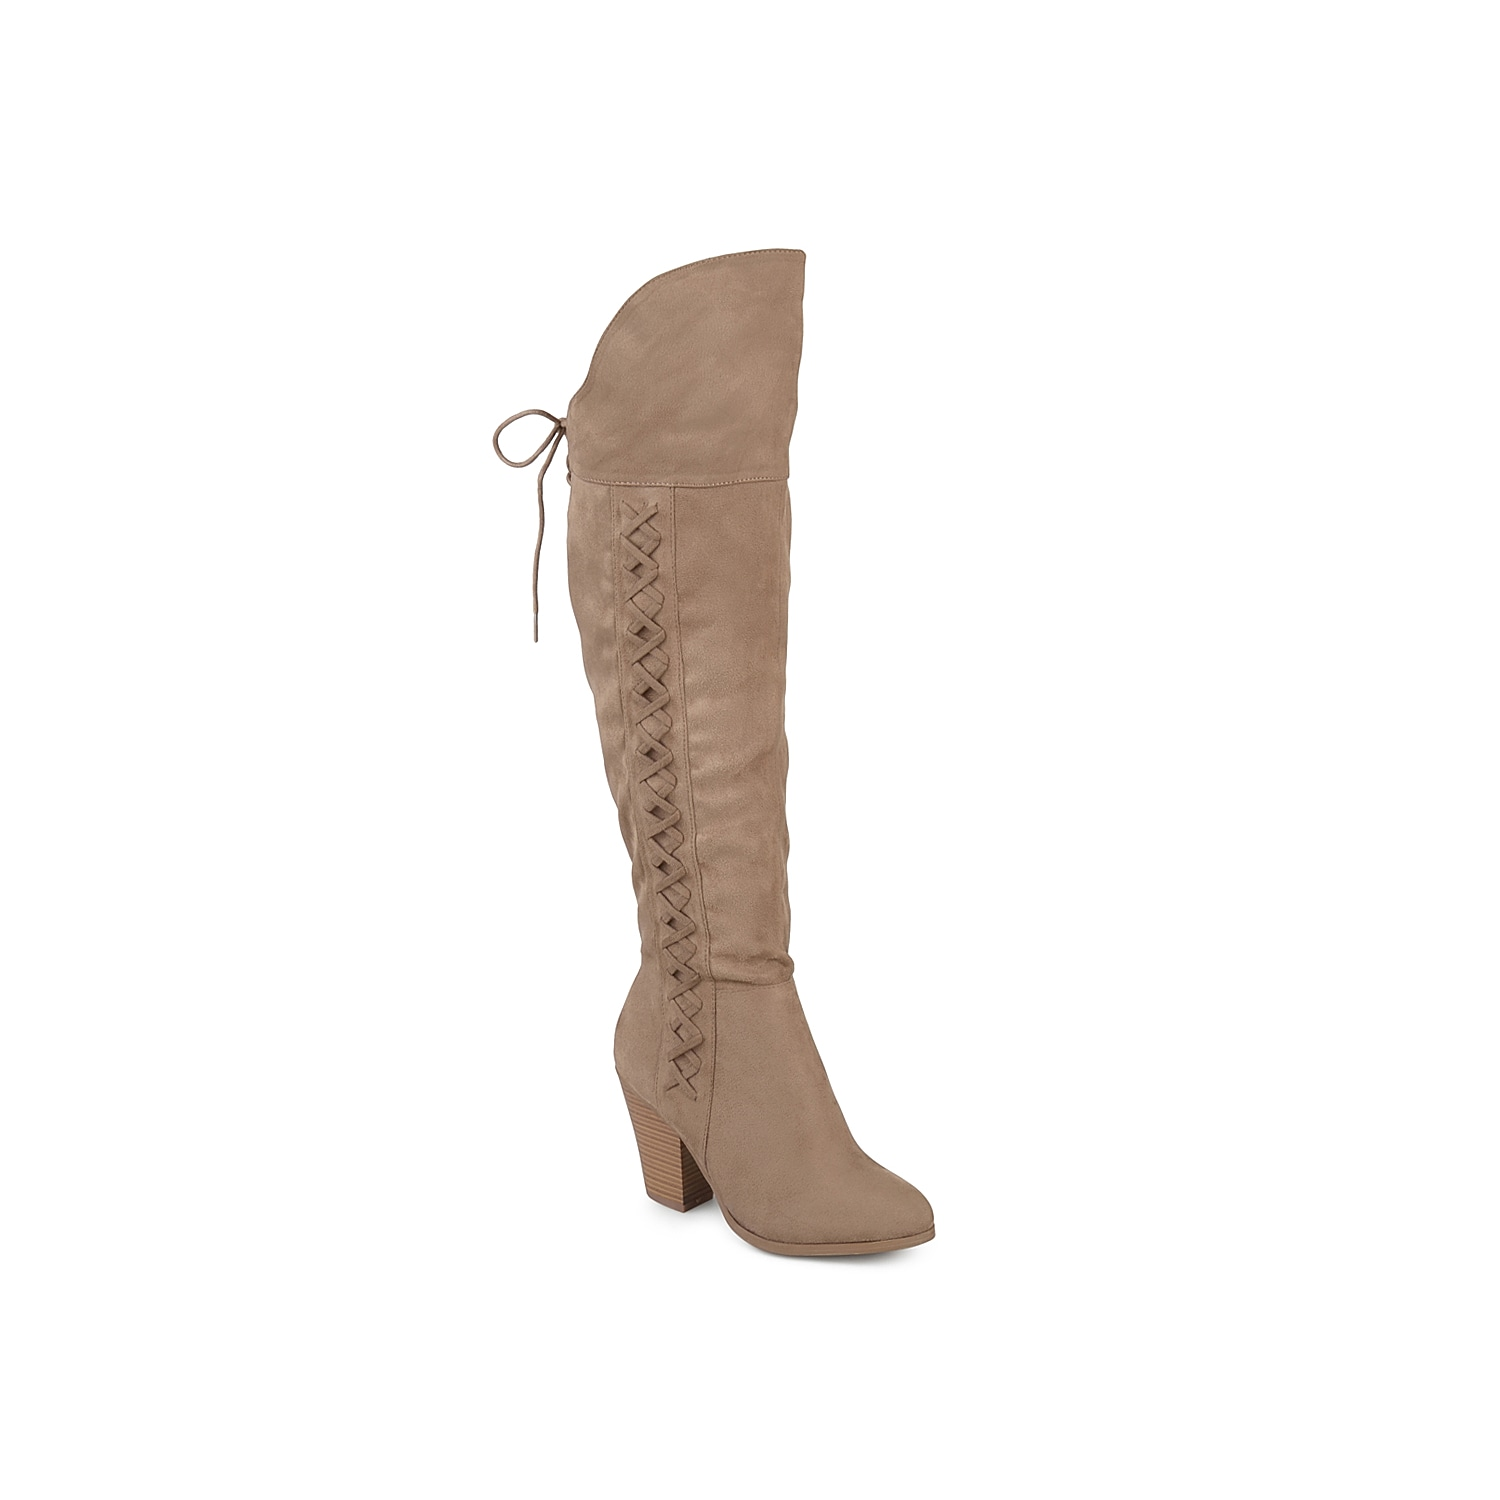 Grant a western-inspired makeover to your soles with this Spritz over the knee boot from Journee Collection. Boasting a braided vamp, this tall boot is designed with chic lace-up details and a tapering stacked heel to impart attention-grabbing appeal. Click here for Boot Measuring Guide.